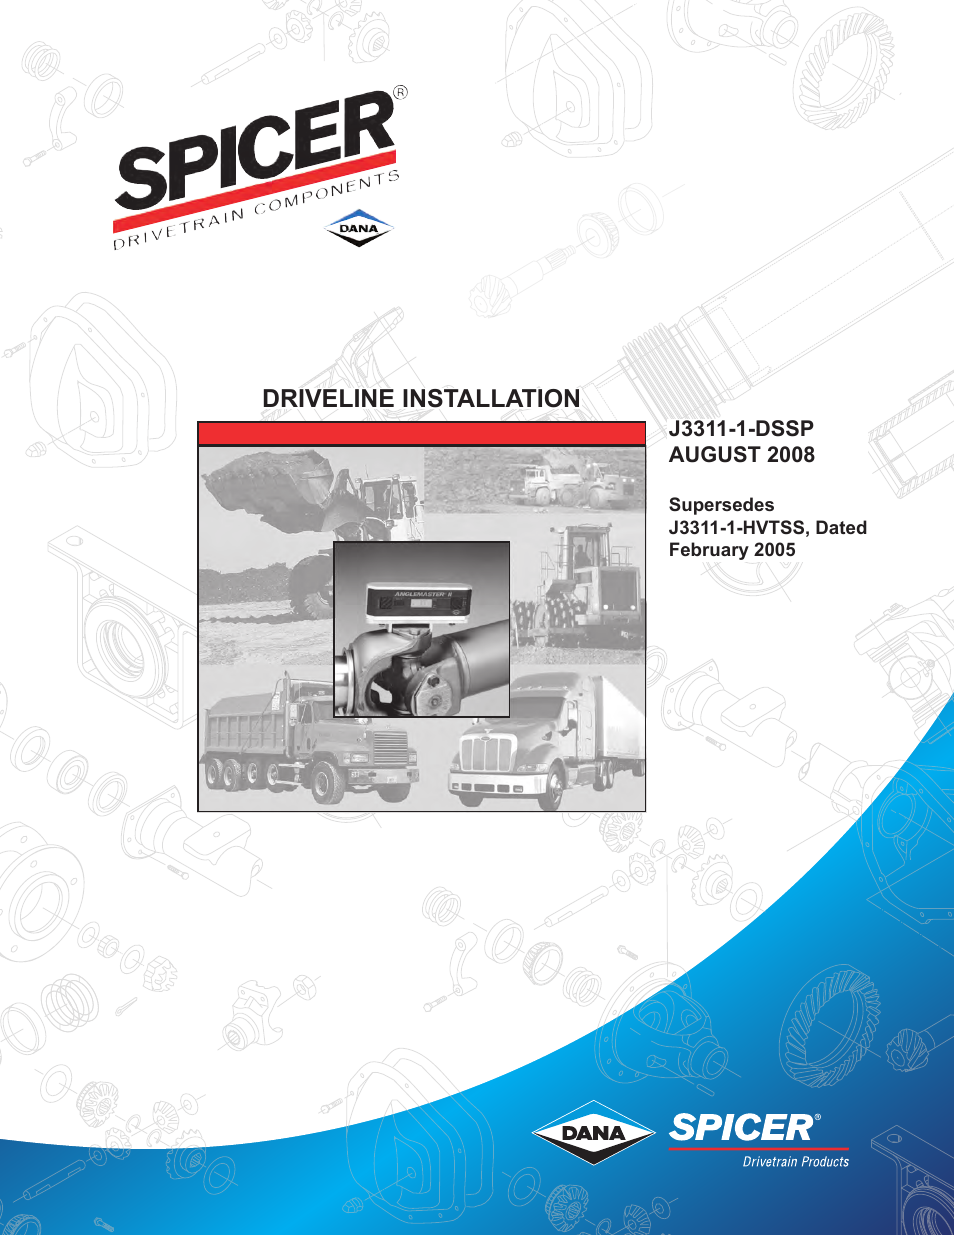 Spicer driveline installation service manual user manual 24 pages publicscrutiny Choice Image